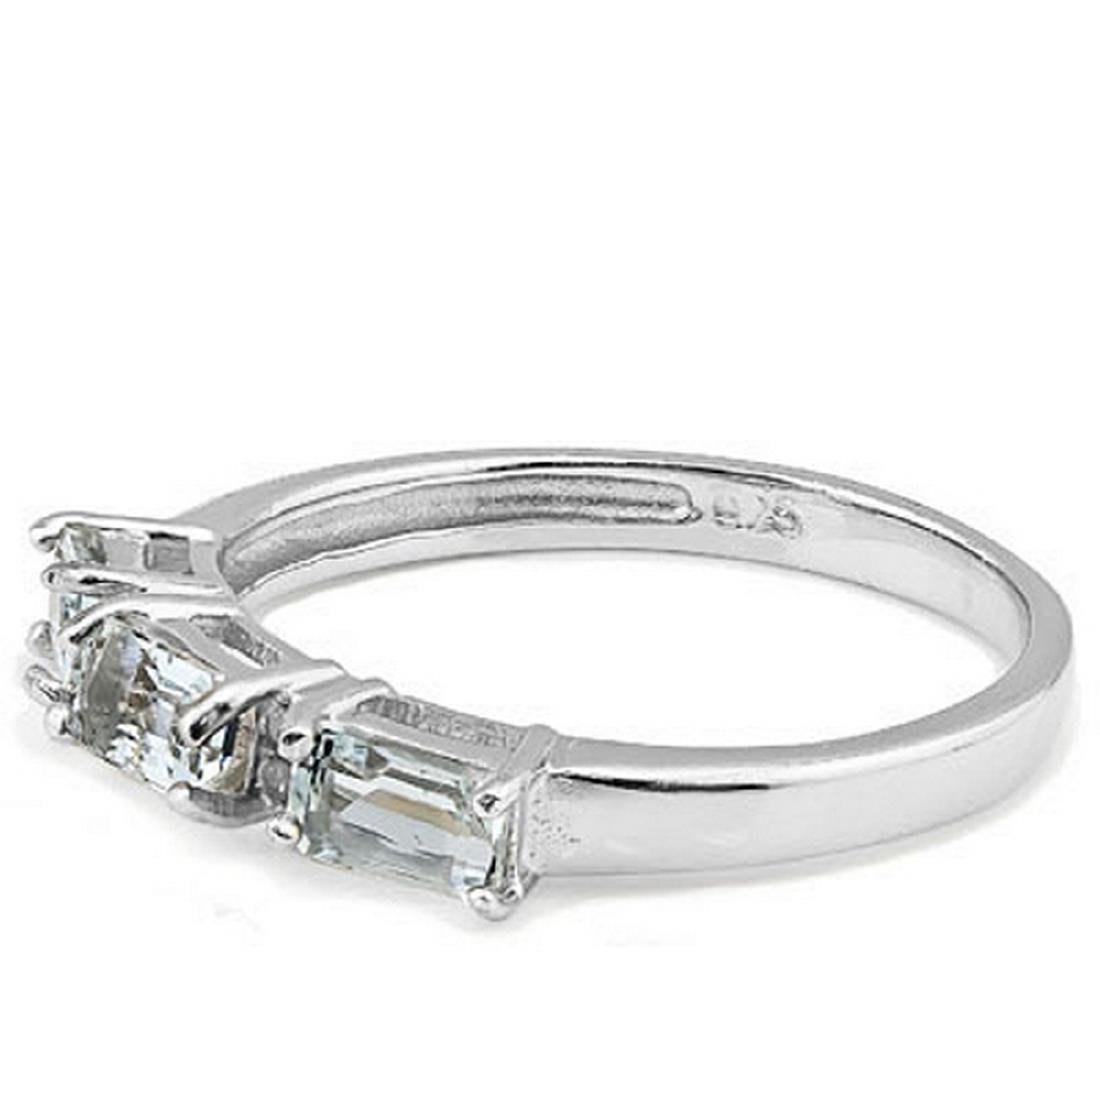 Aquamarine and Diamond Stacking Ring in Sterling Silver - 2